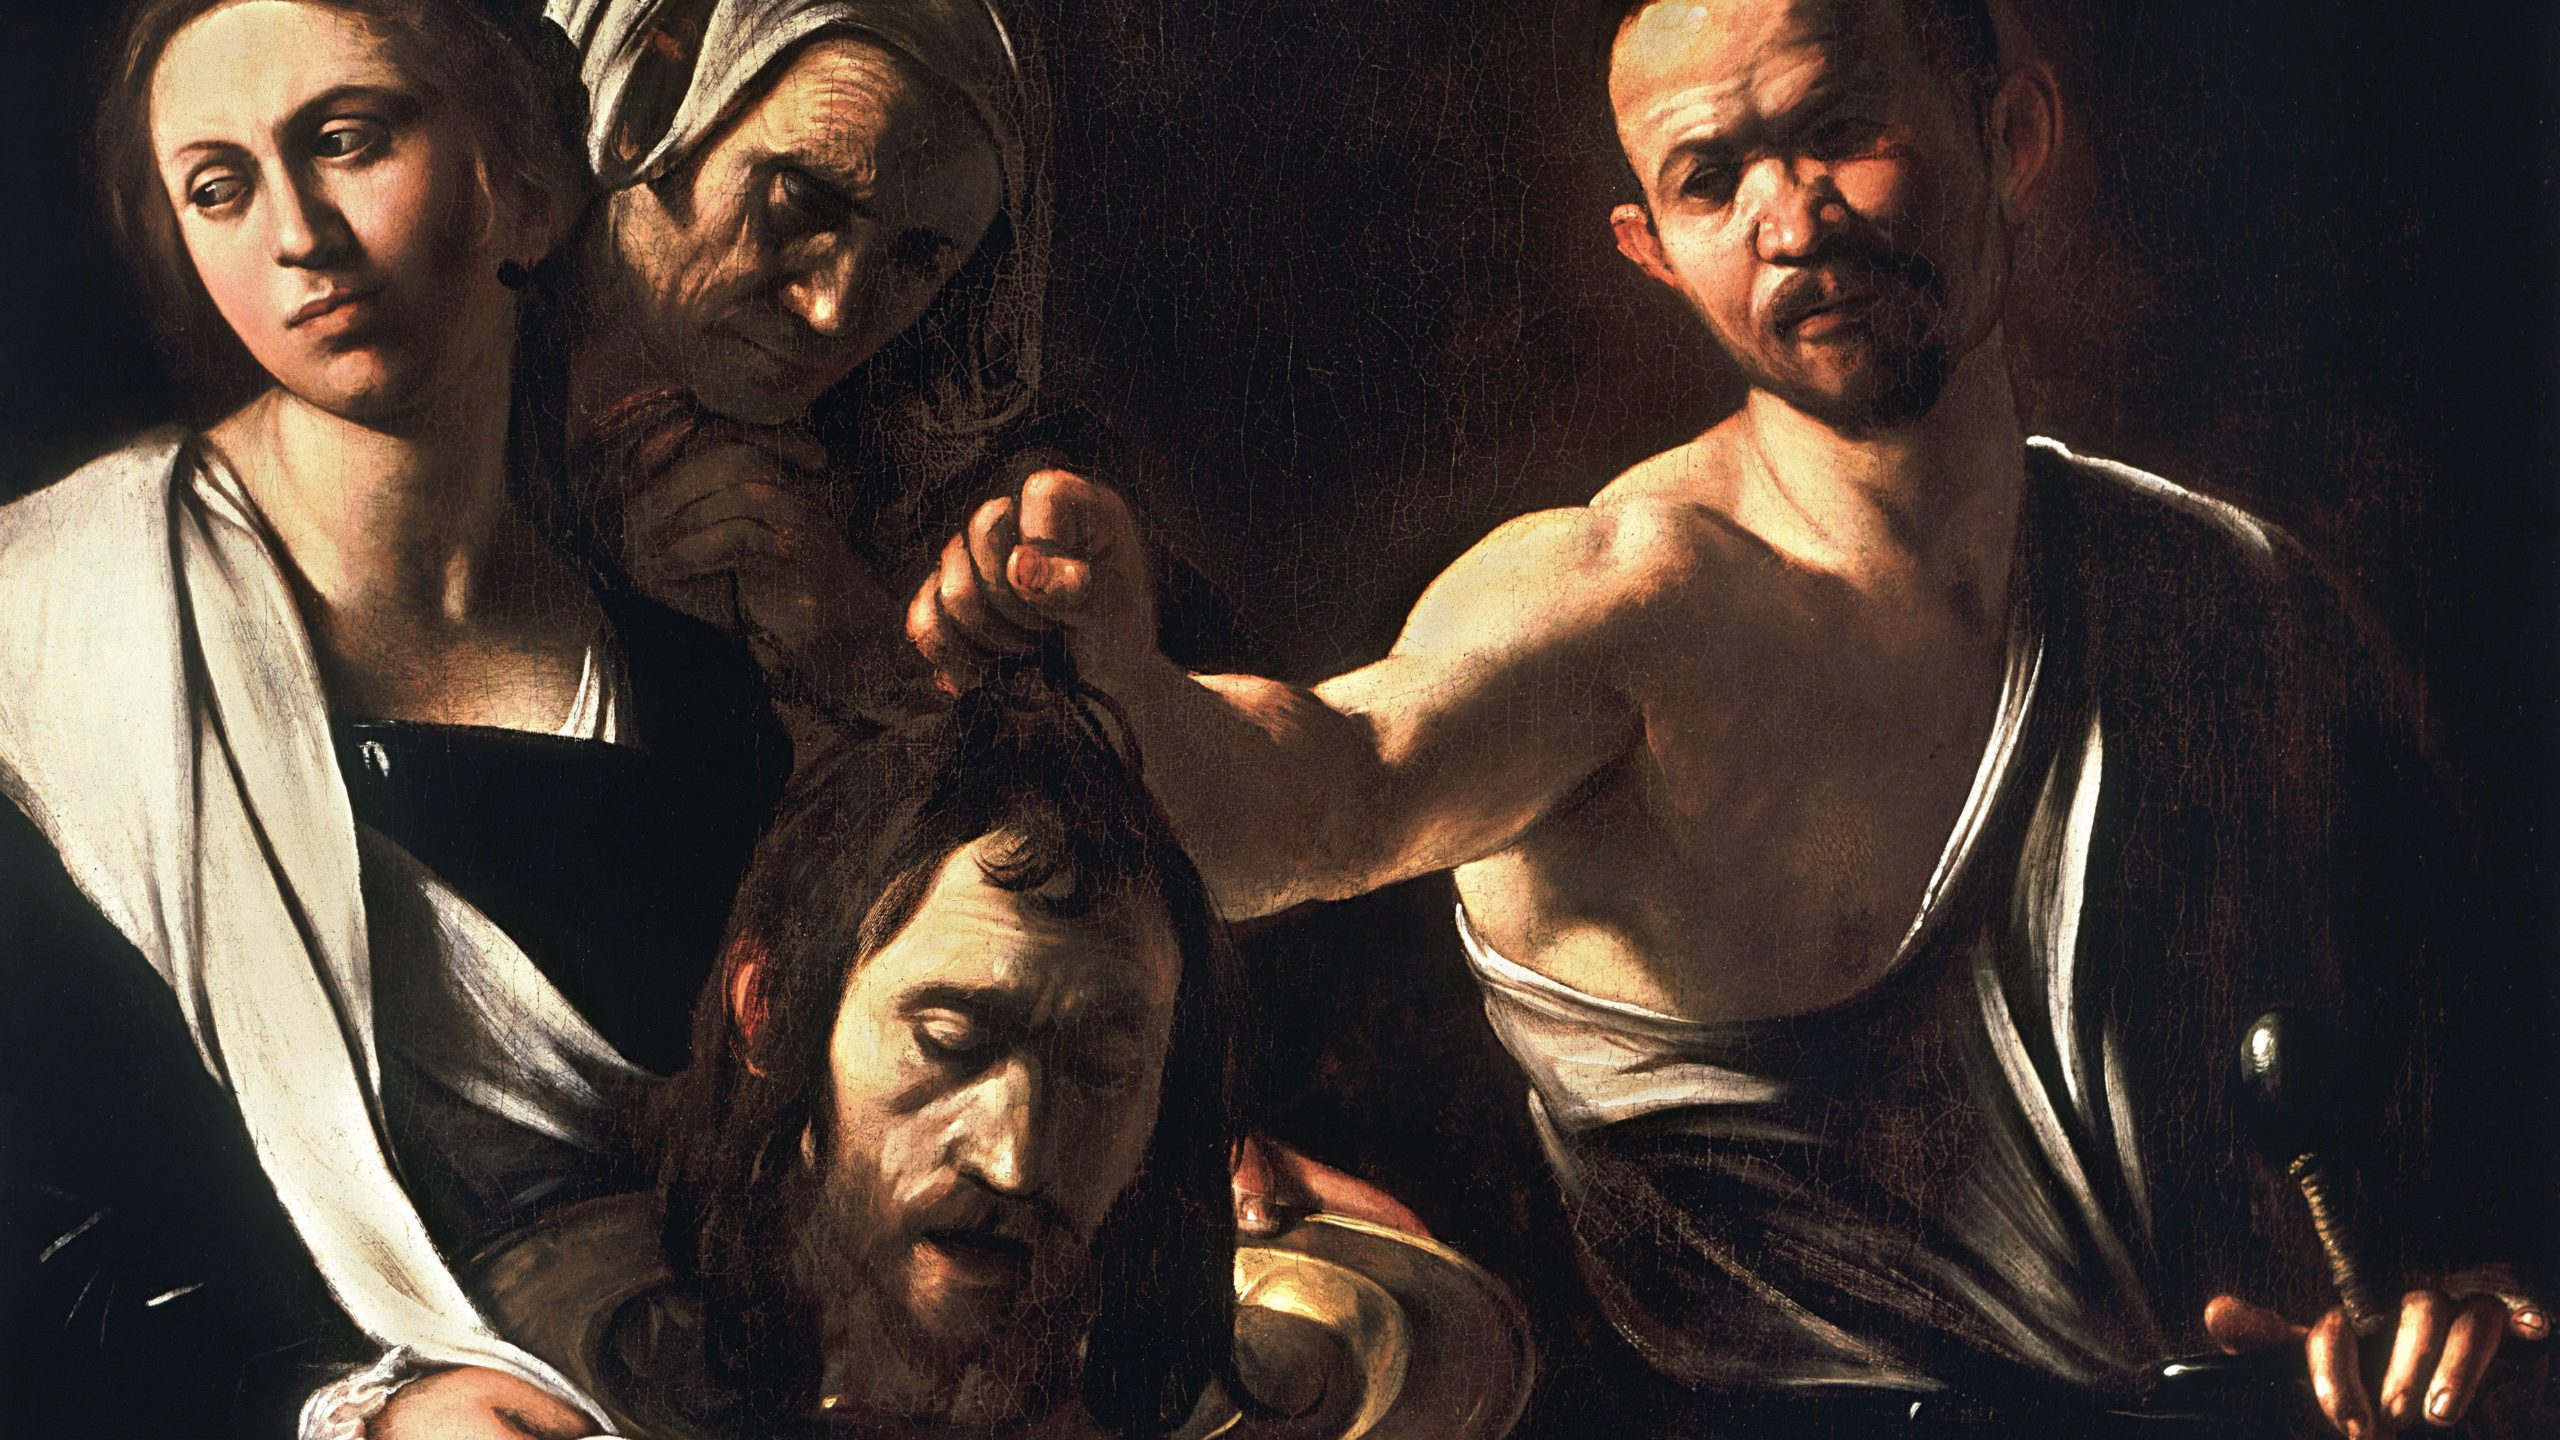 salome and the head of john the baptist by caravaggio